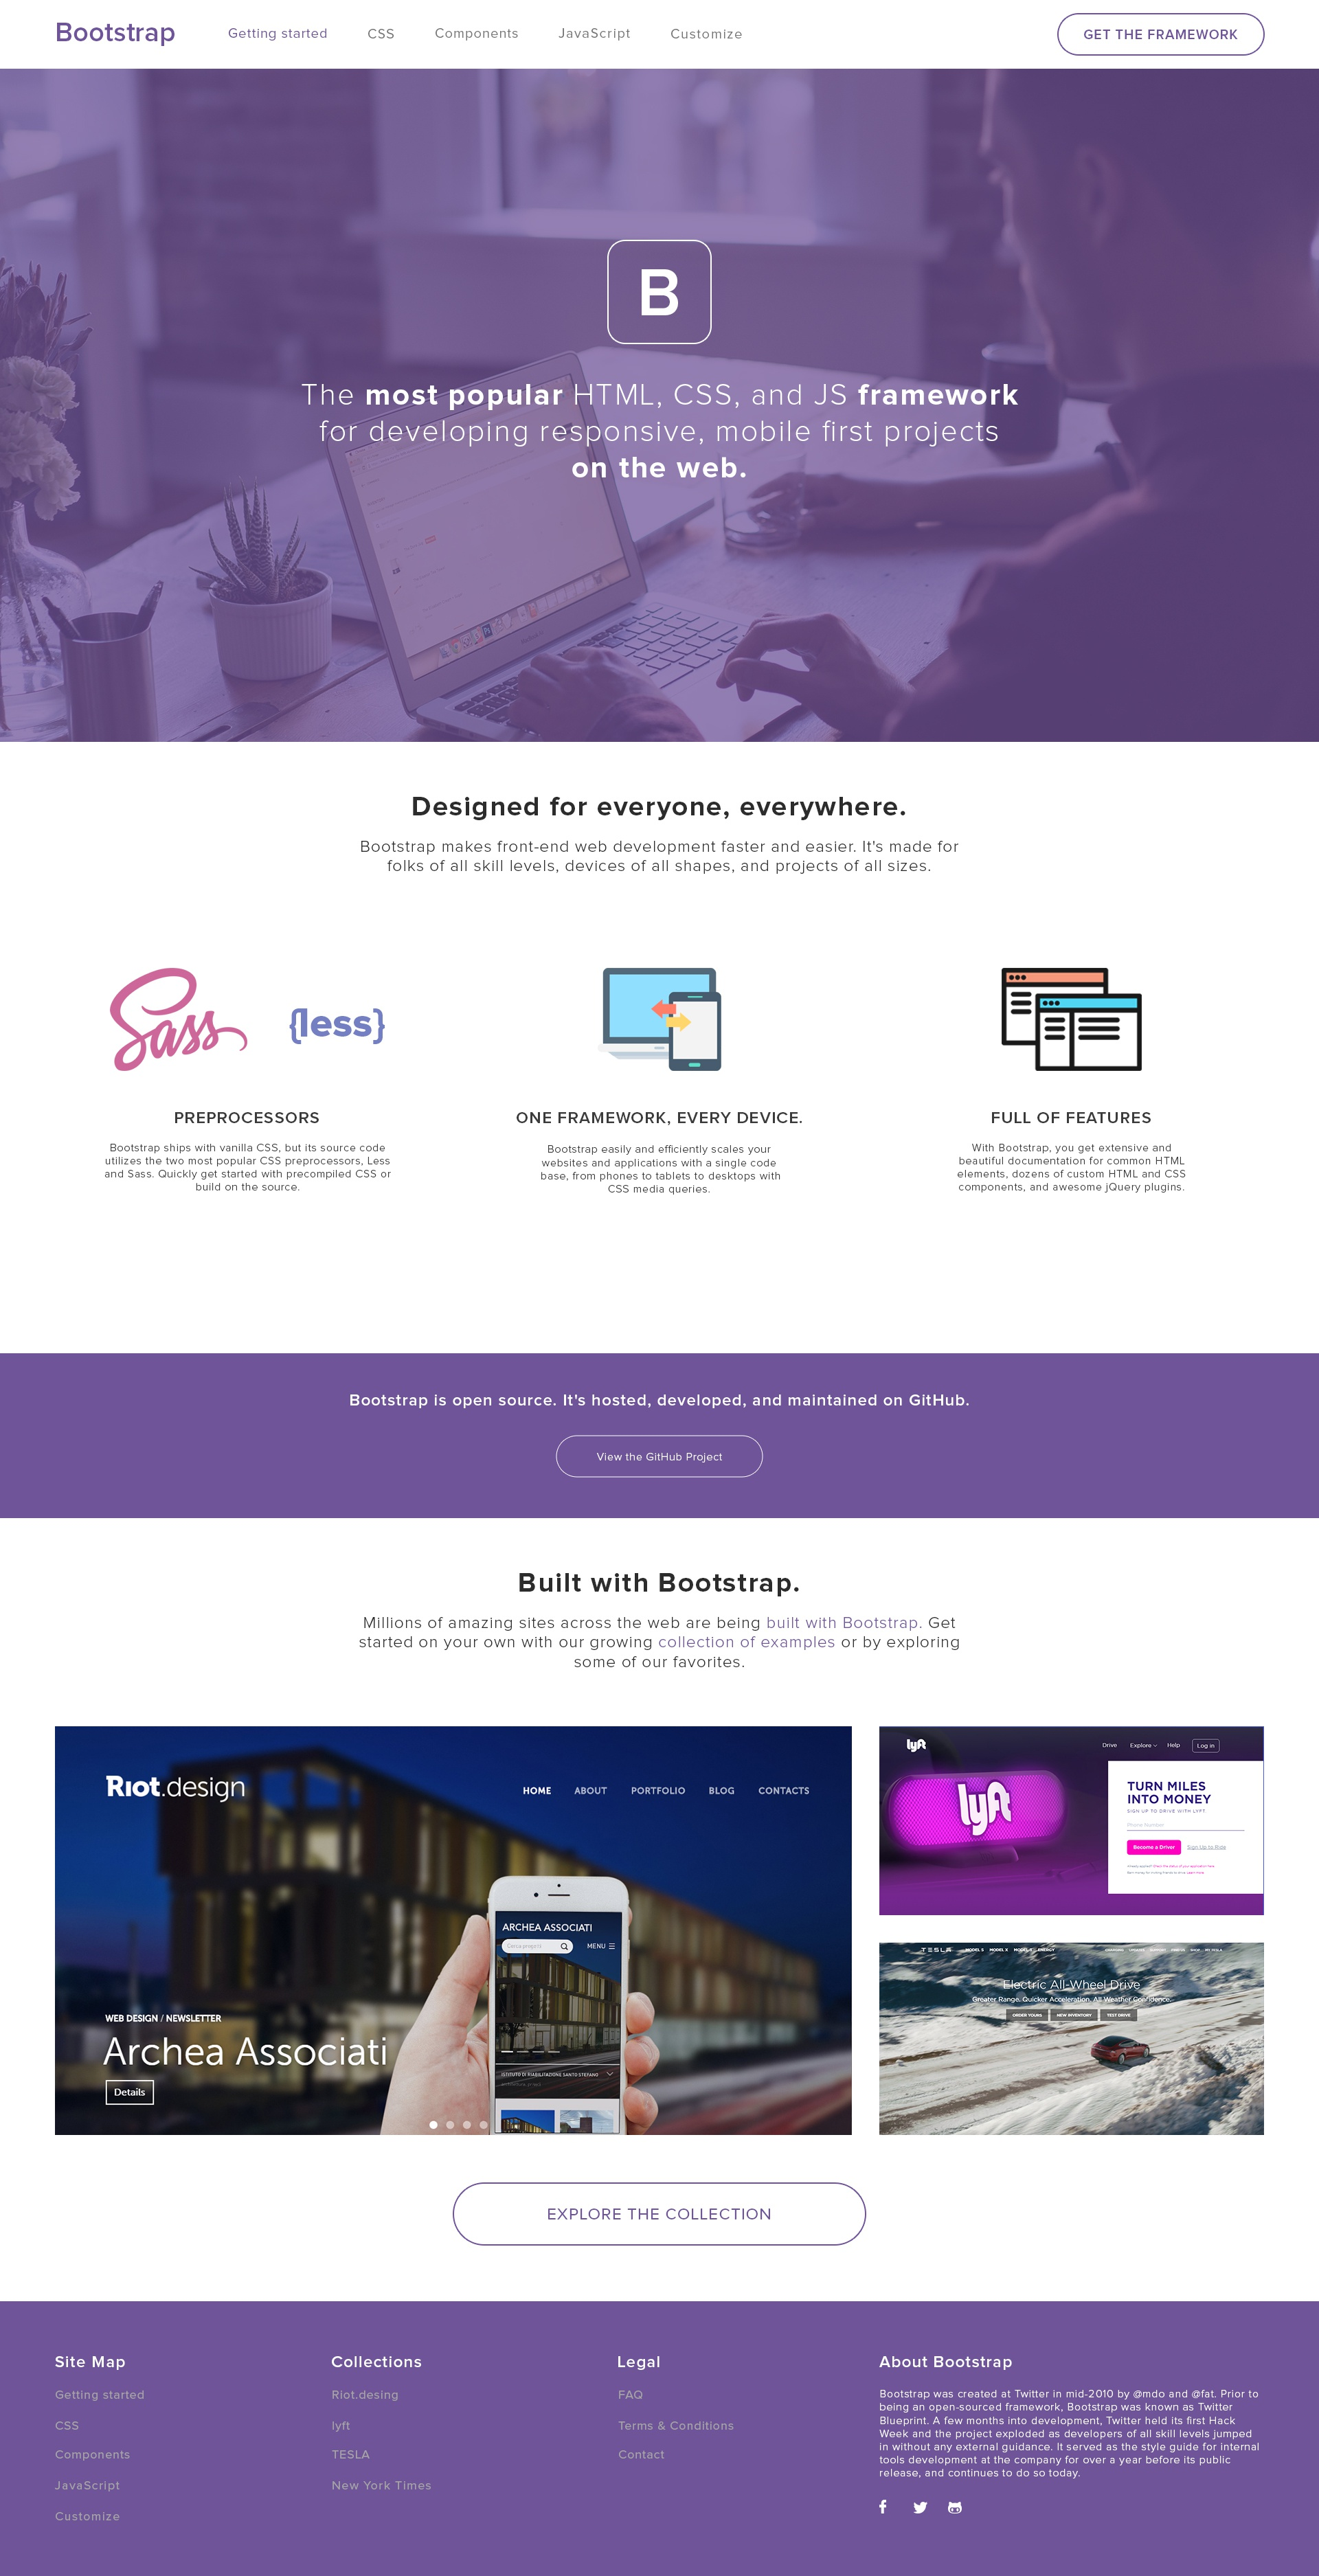 Bootstrap redesign